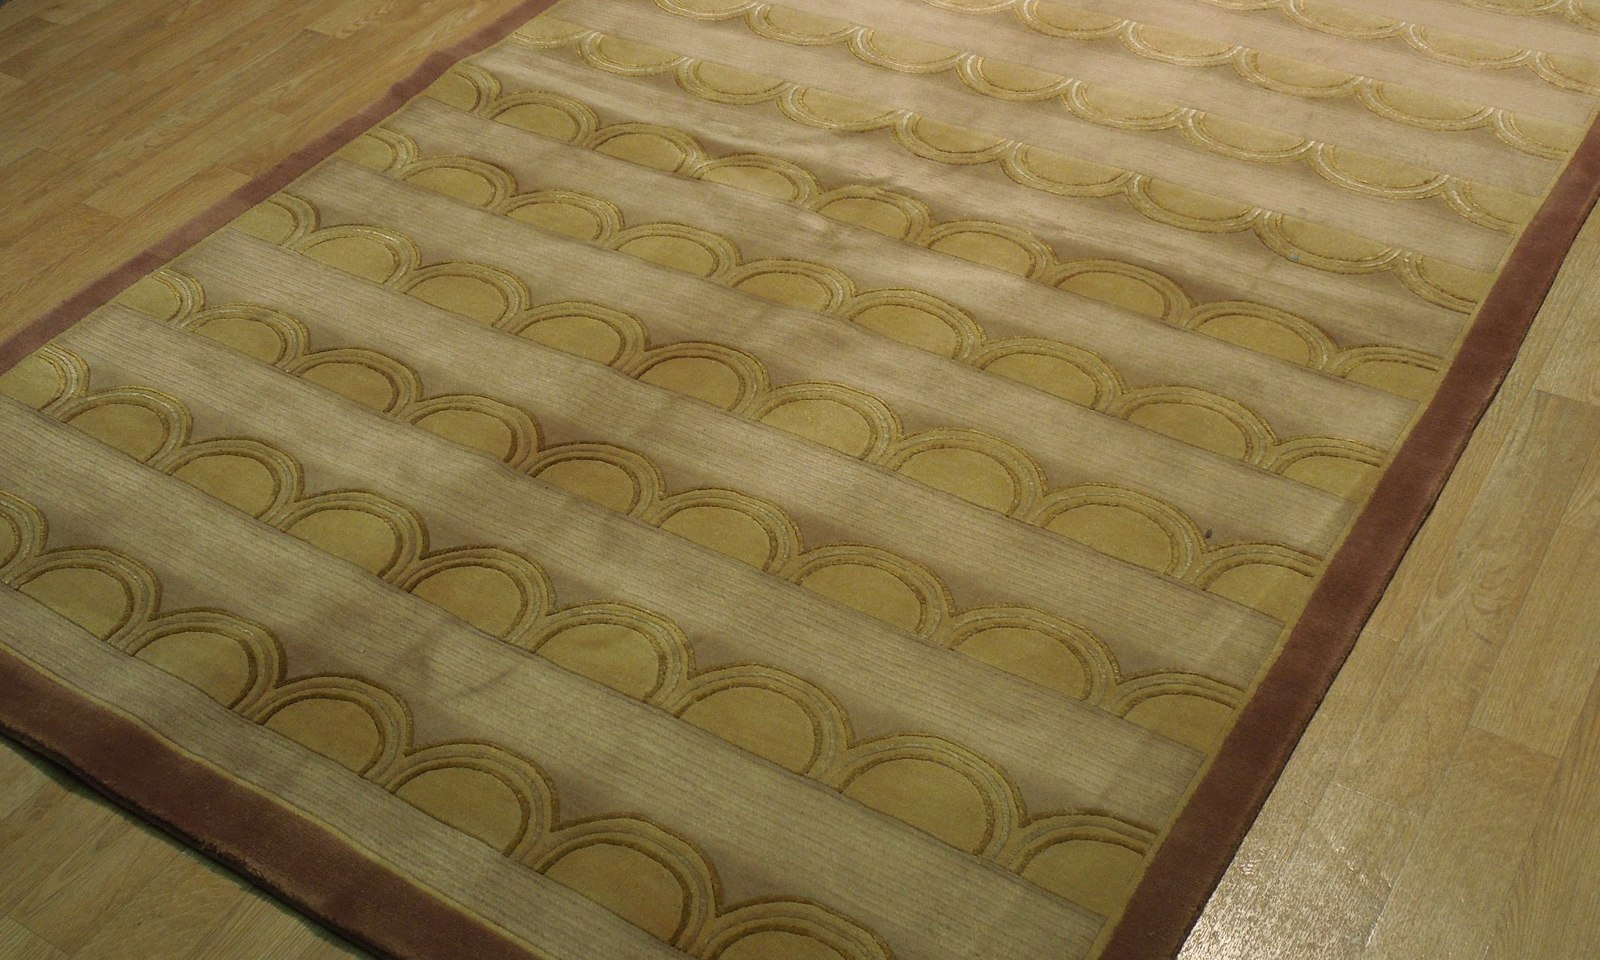 Beige Rug 5 x 8 Wool & Silk Centered Waves Nepalese Hand-Knotted Rug image 9